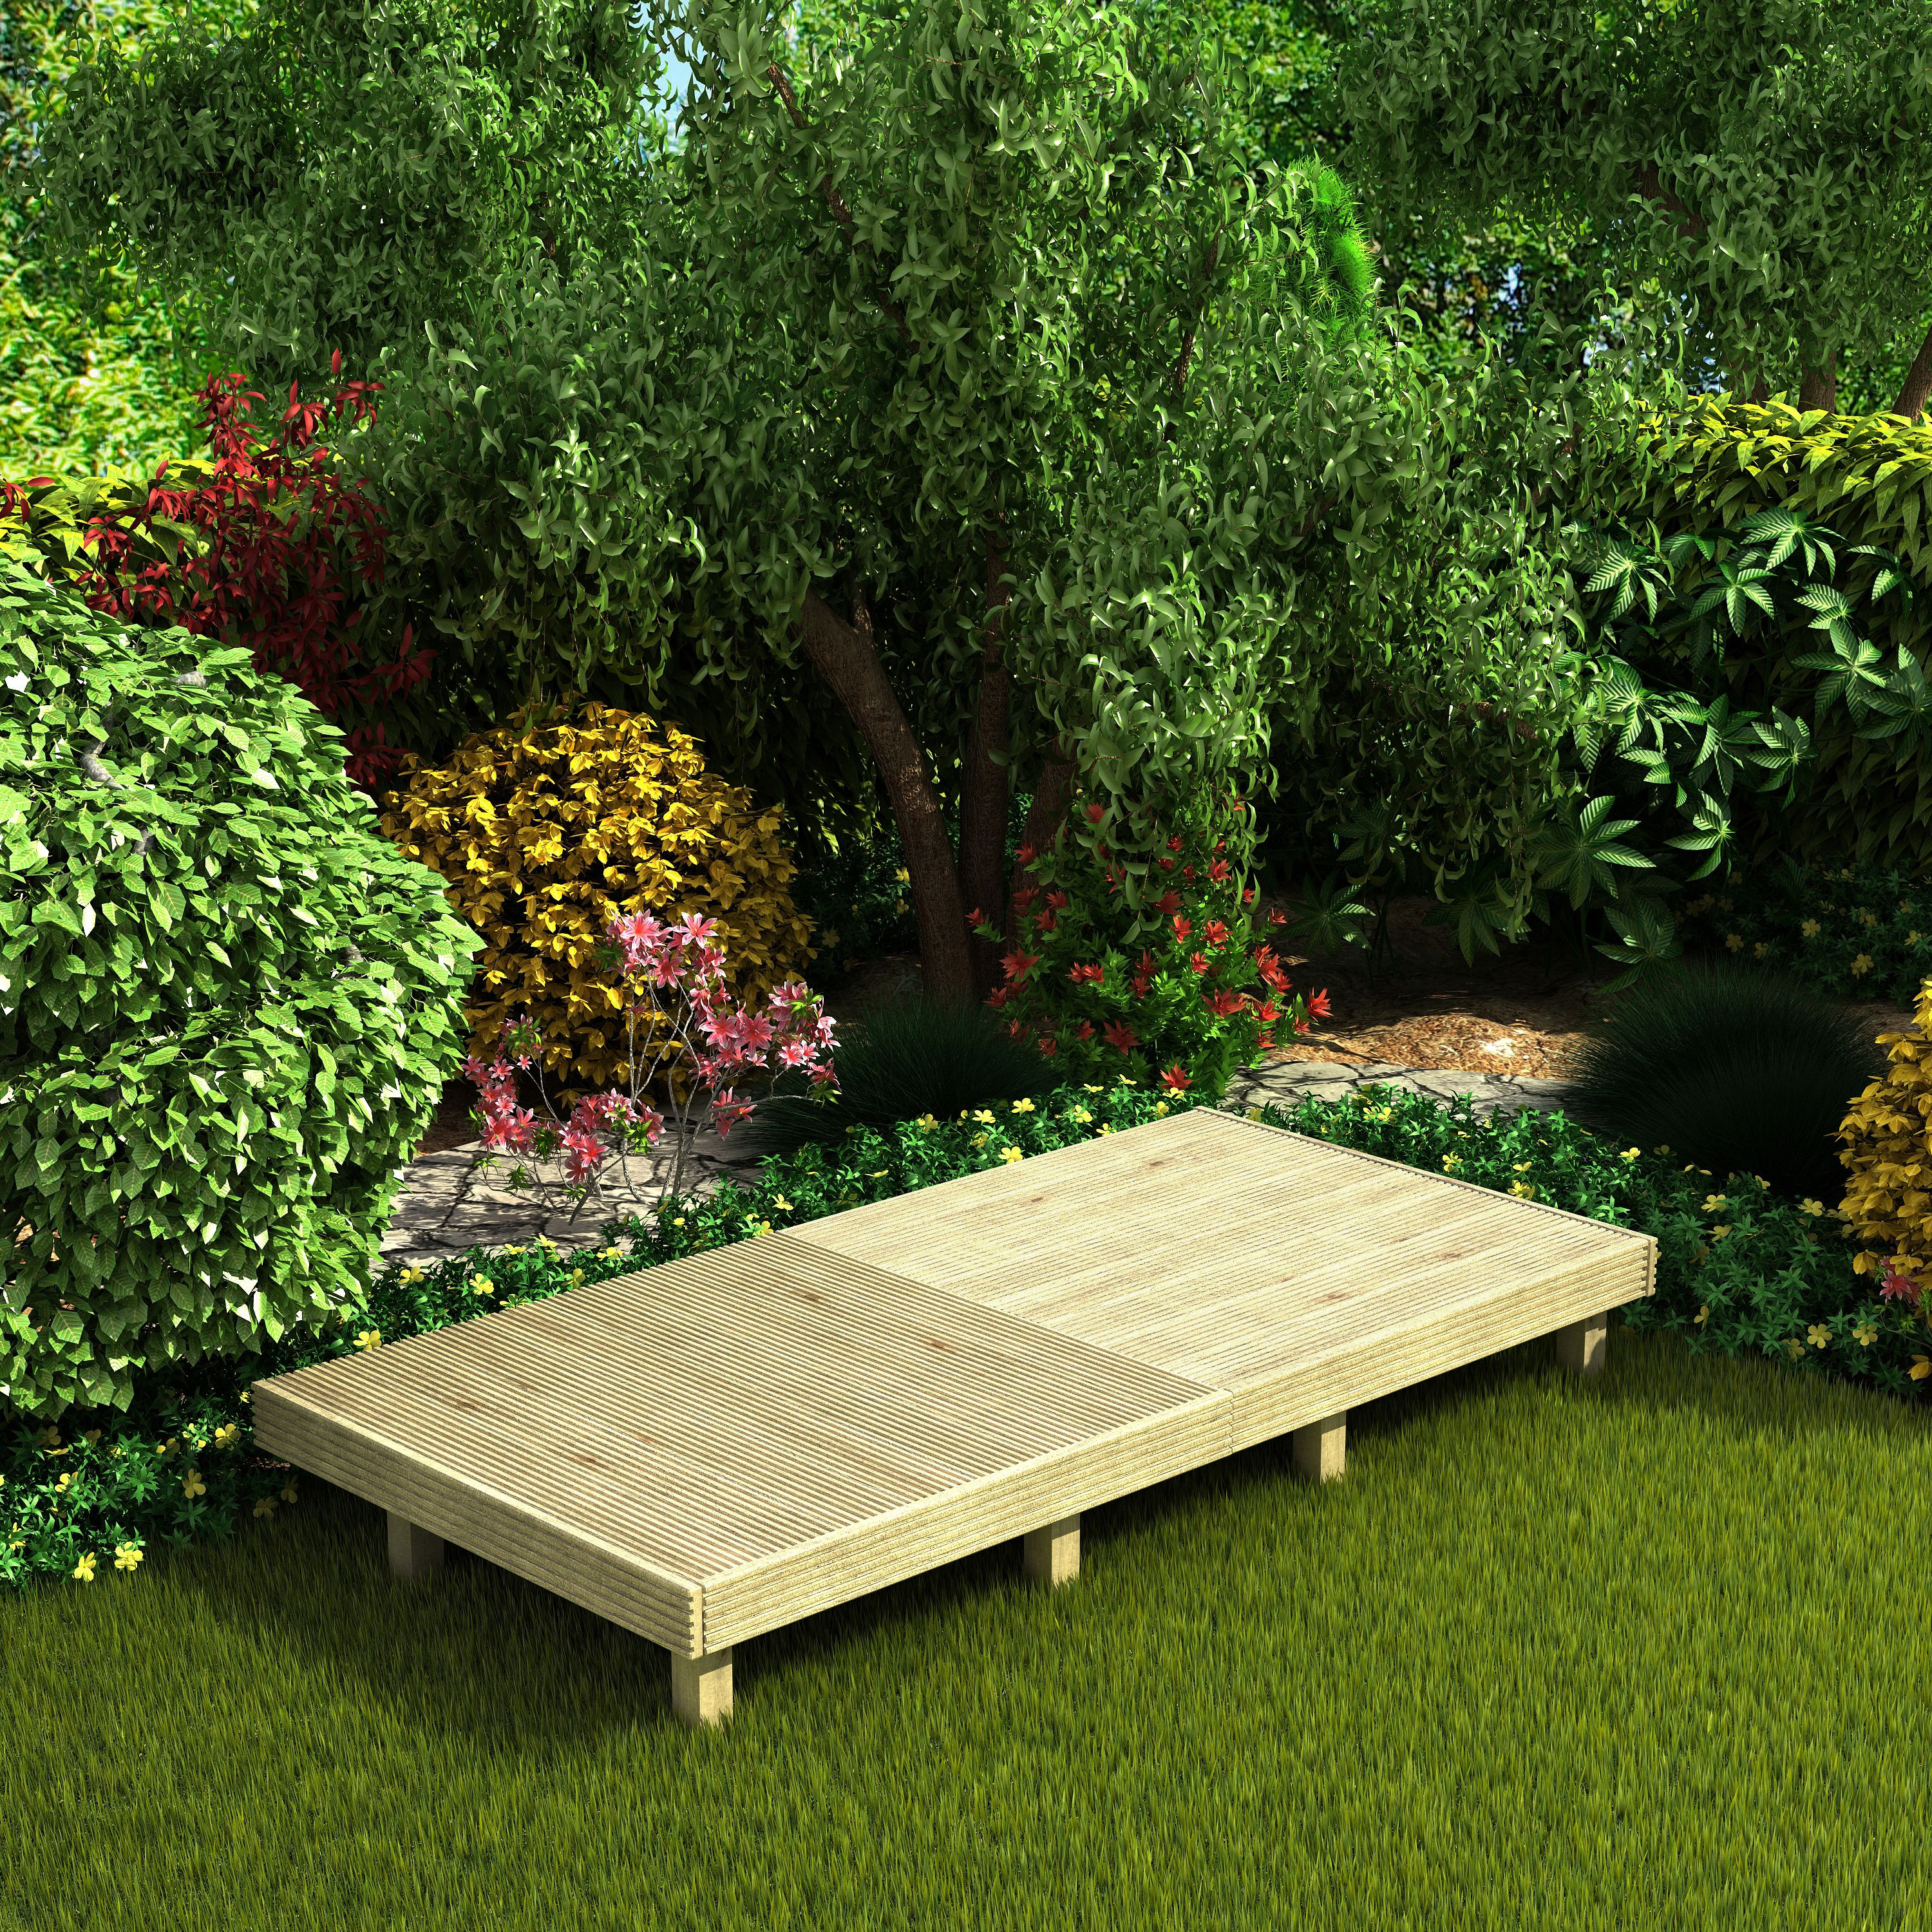 Best ideas about DIY Deck Kits . Save or Pin Deck² Easy Build Softwood Modular Deck System Now.